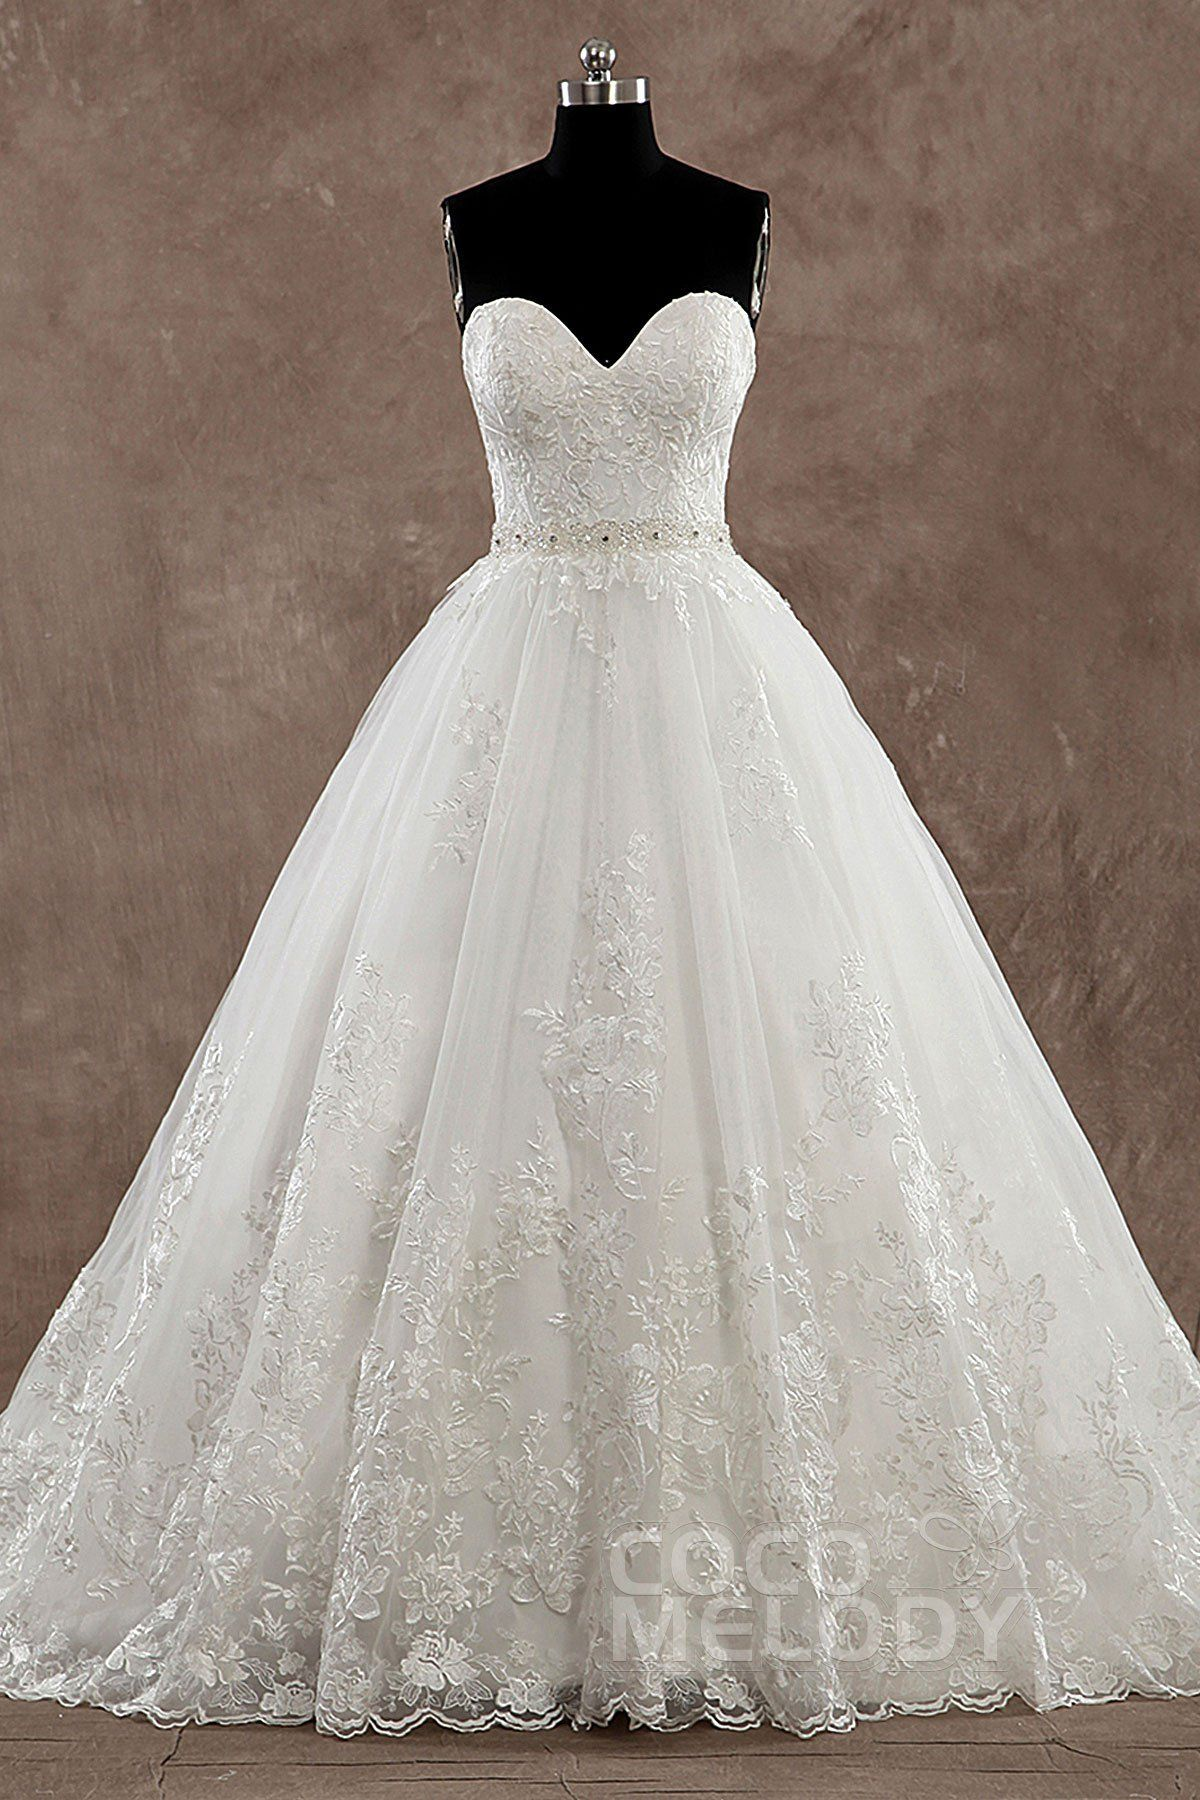 Pretty+A-line+Sweetheart+Natural+Train+Tulle+Ivory+Sleeveless+Wedding+Dress+with+Appliques+LD3483